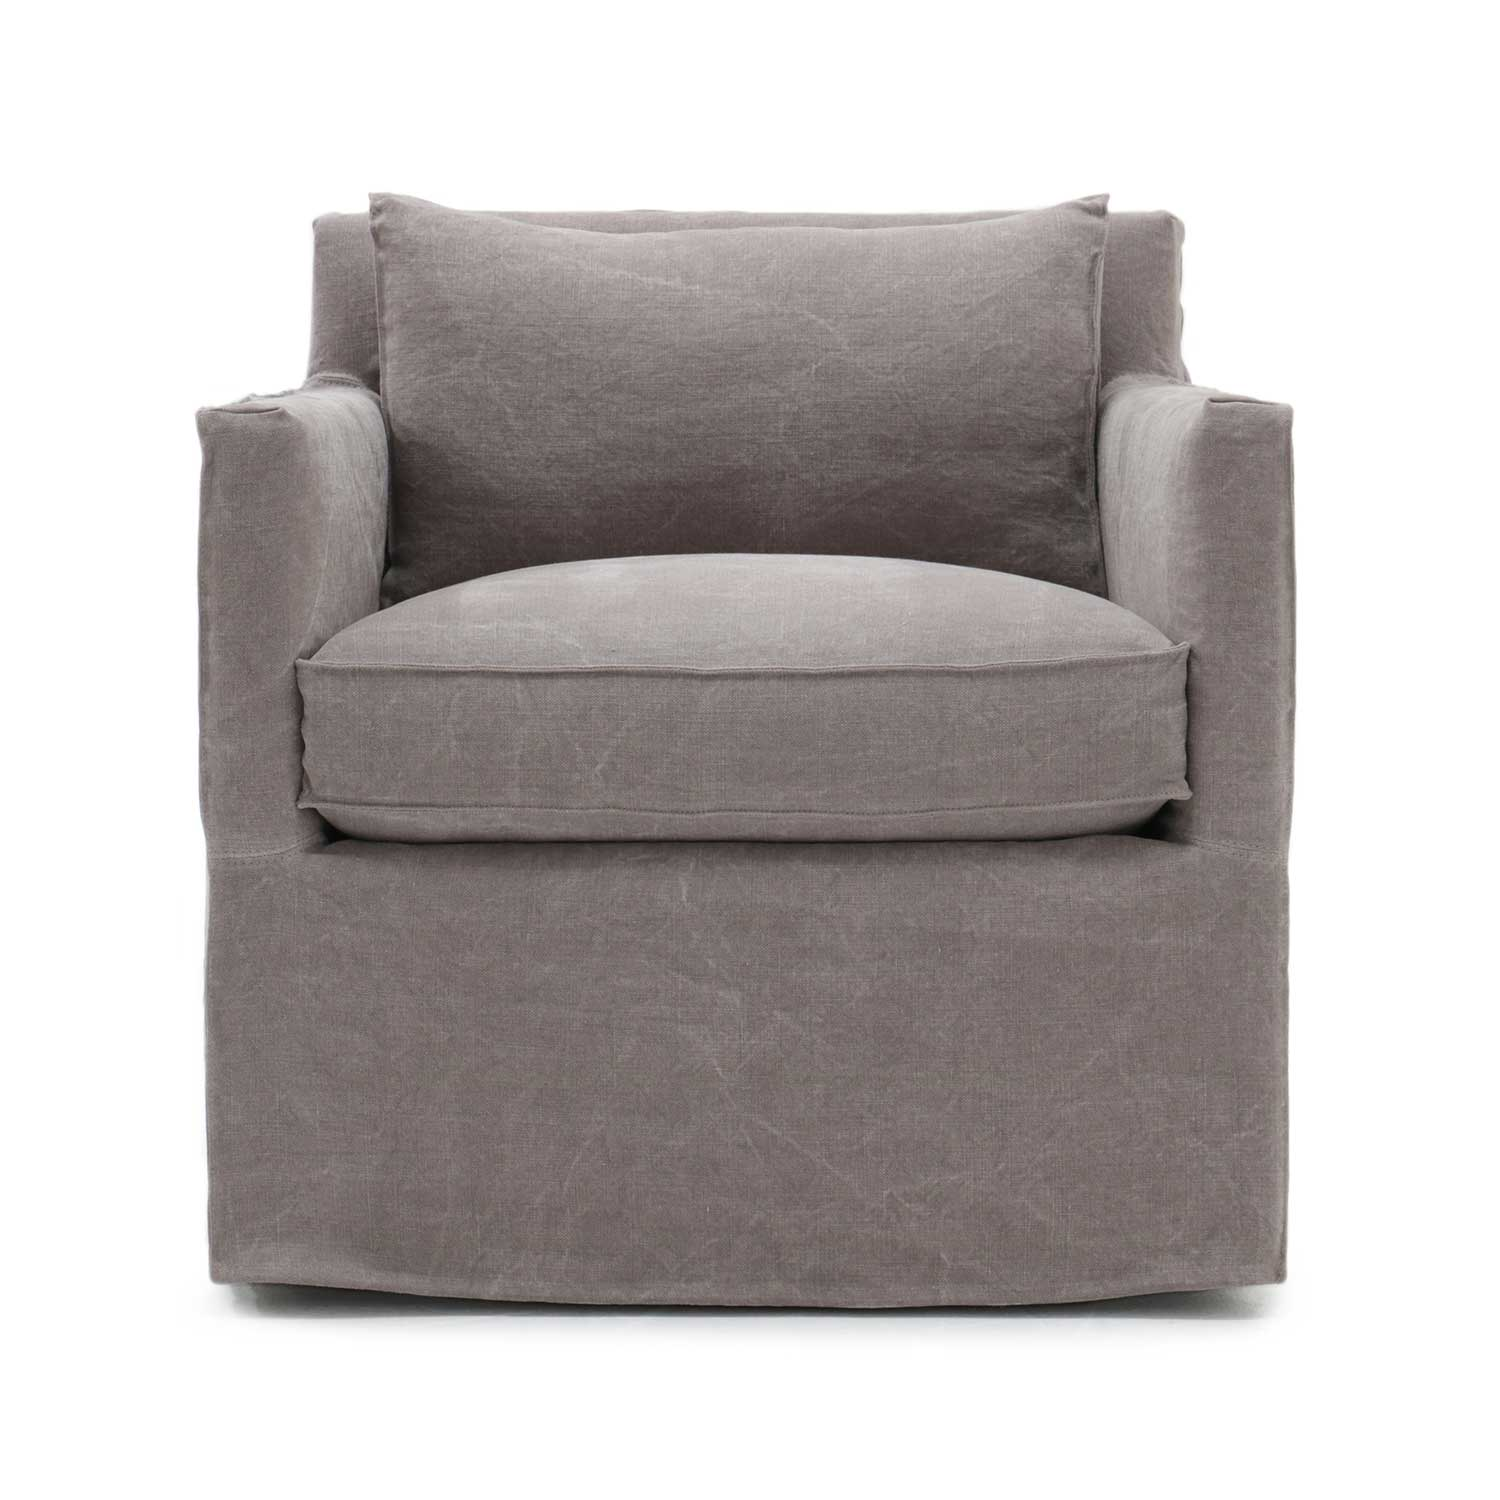 Jan Club Swivel Chair Inala Flax